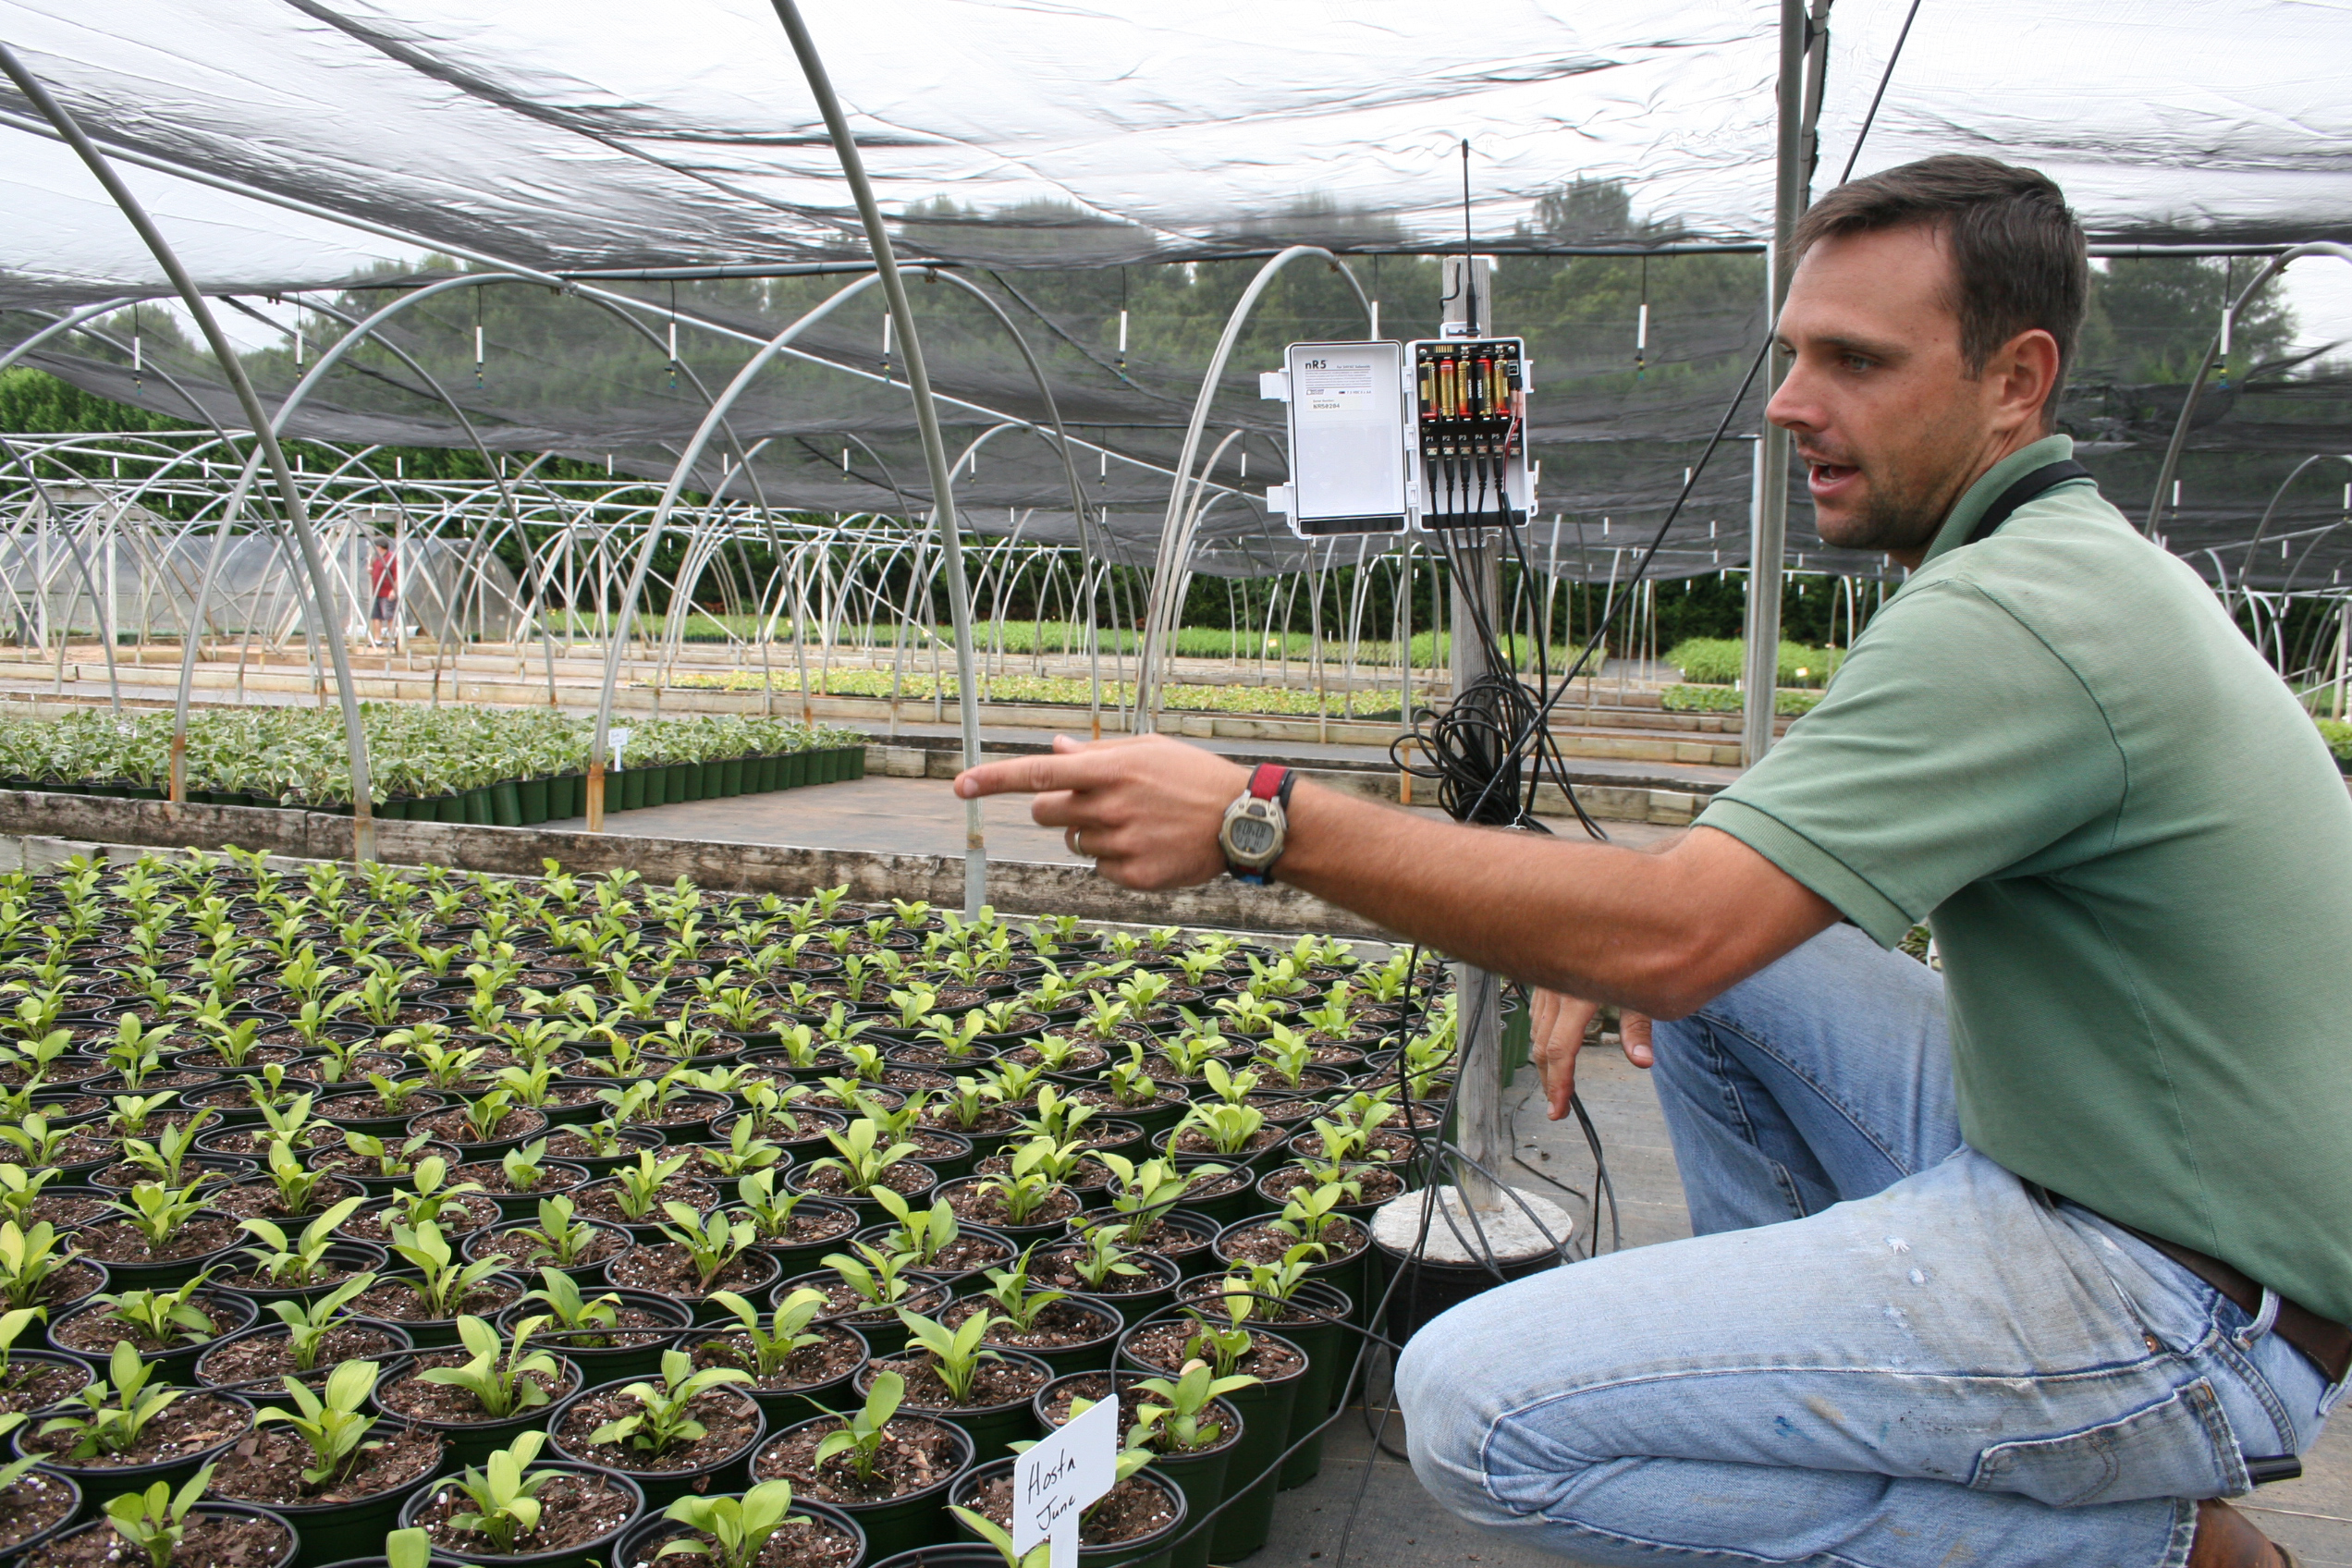 Will Ross, head grower at Evergreen Nursery in Statham, explains how a new automated micro-irrigation system developed by UGA researchers has helped him get these hostas — being grown for next spring — off to a good start.